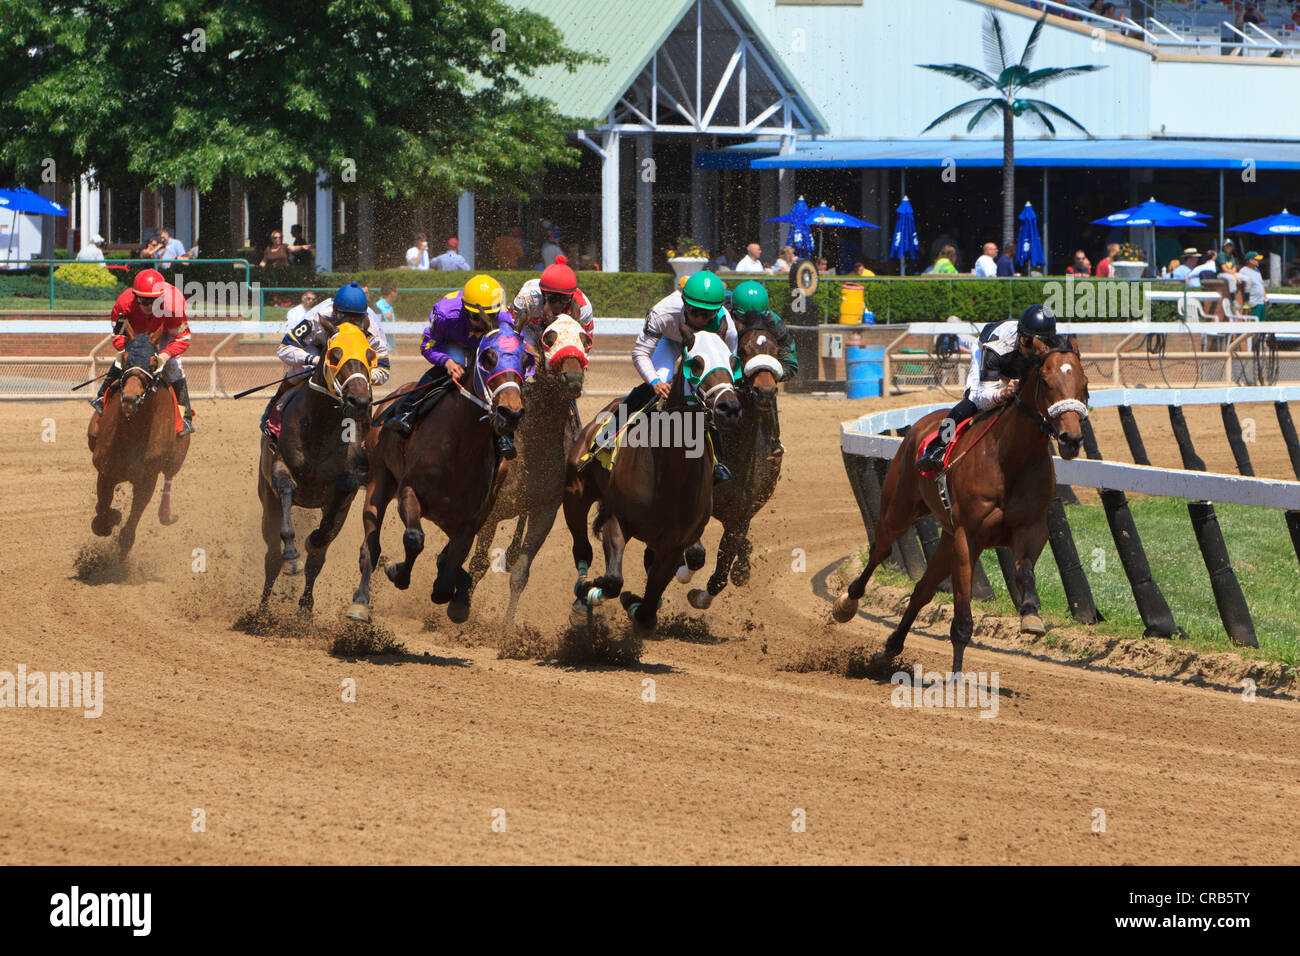 Horses coming into the first turn of a thoroughbred race, - Stock Image